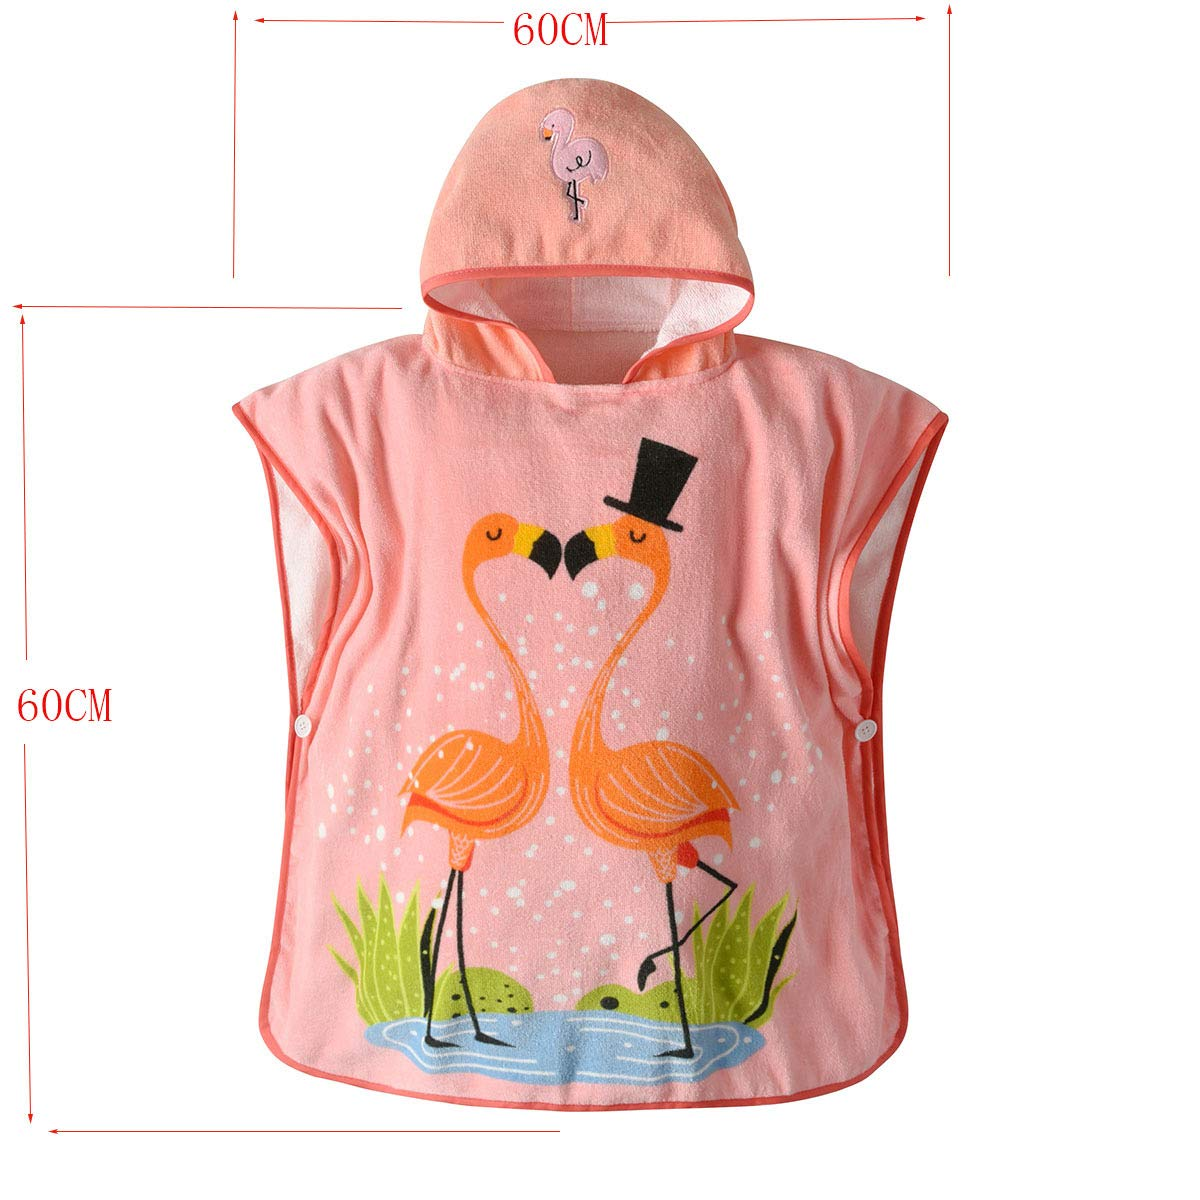 XXRBB Soft Cotton Hooded Towels for Baby Kids,Microfiber Hypoallergenic Super Absorbent Lightweight Girls Robe with Cute Animal Appliques,60x60cm(24x24inch) by XXRBB